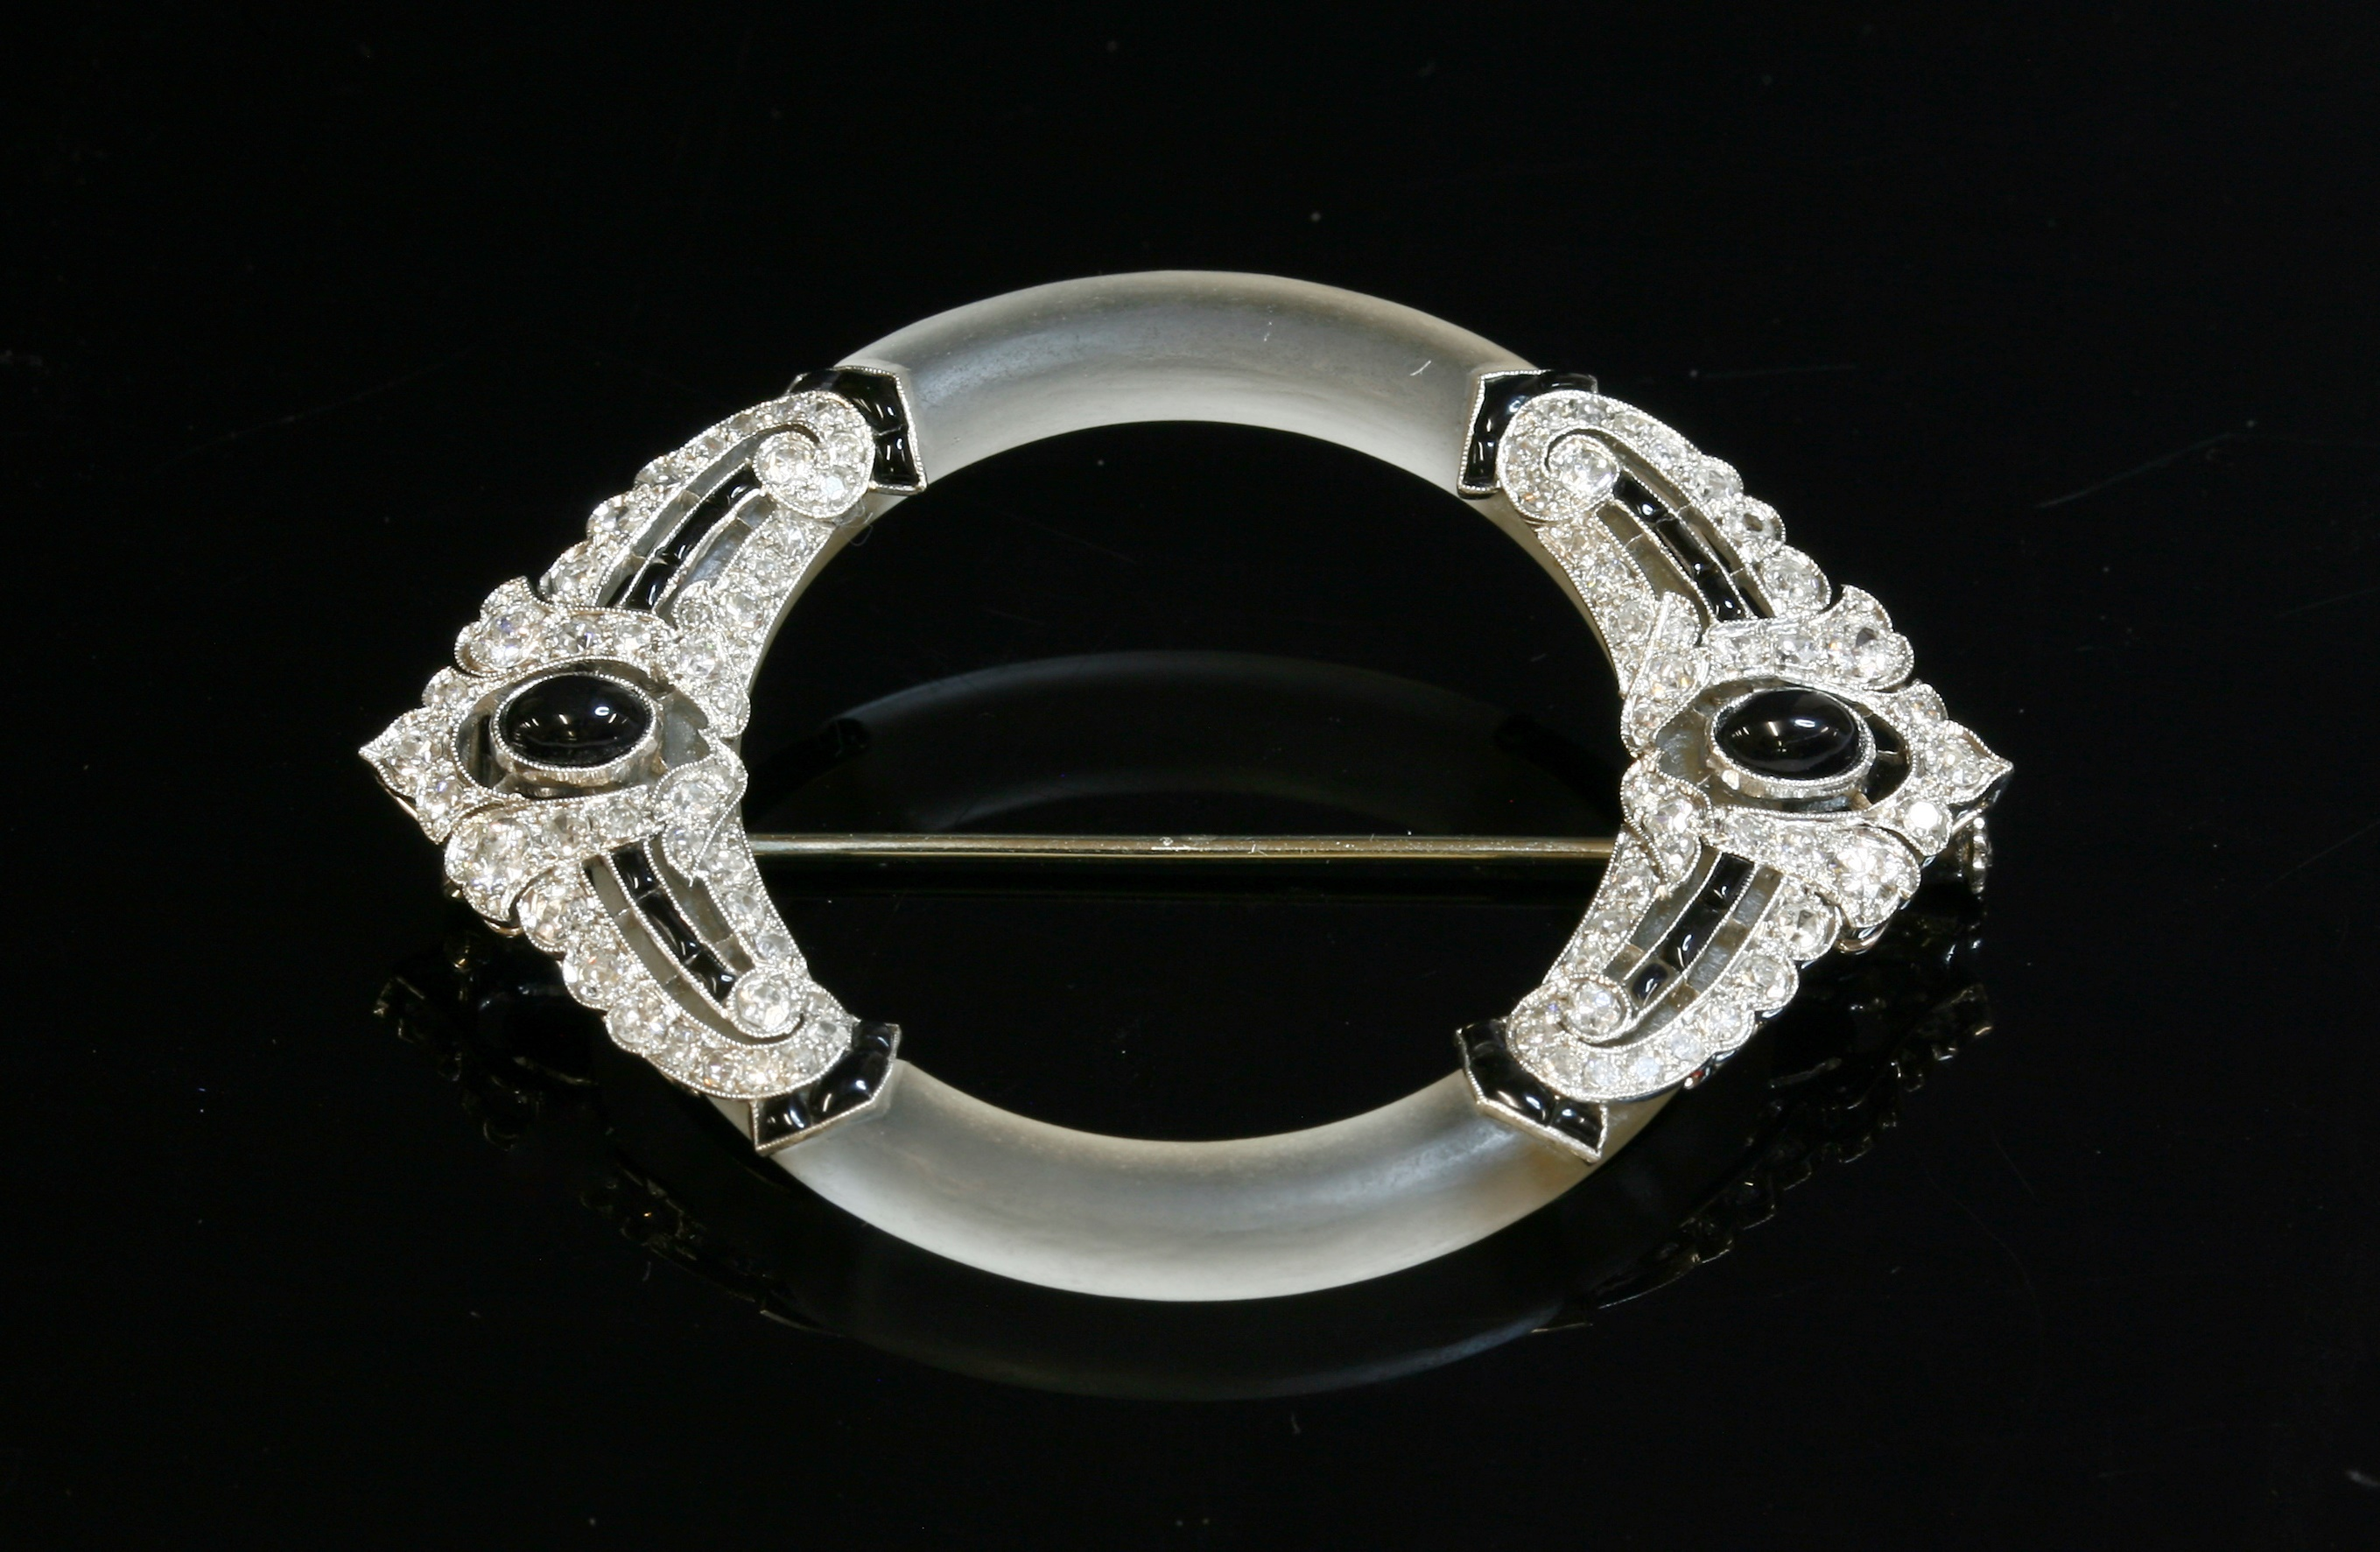 A French Art Deco platinum, gold, rock crystal, onyx and diamond brooch, c.1925